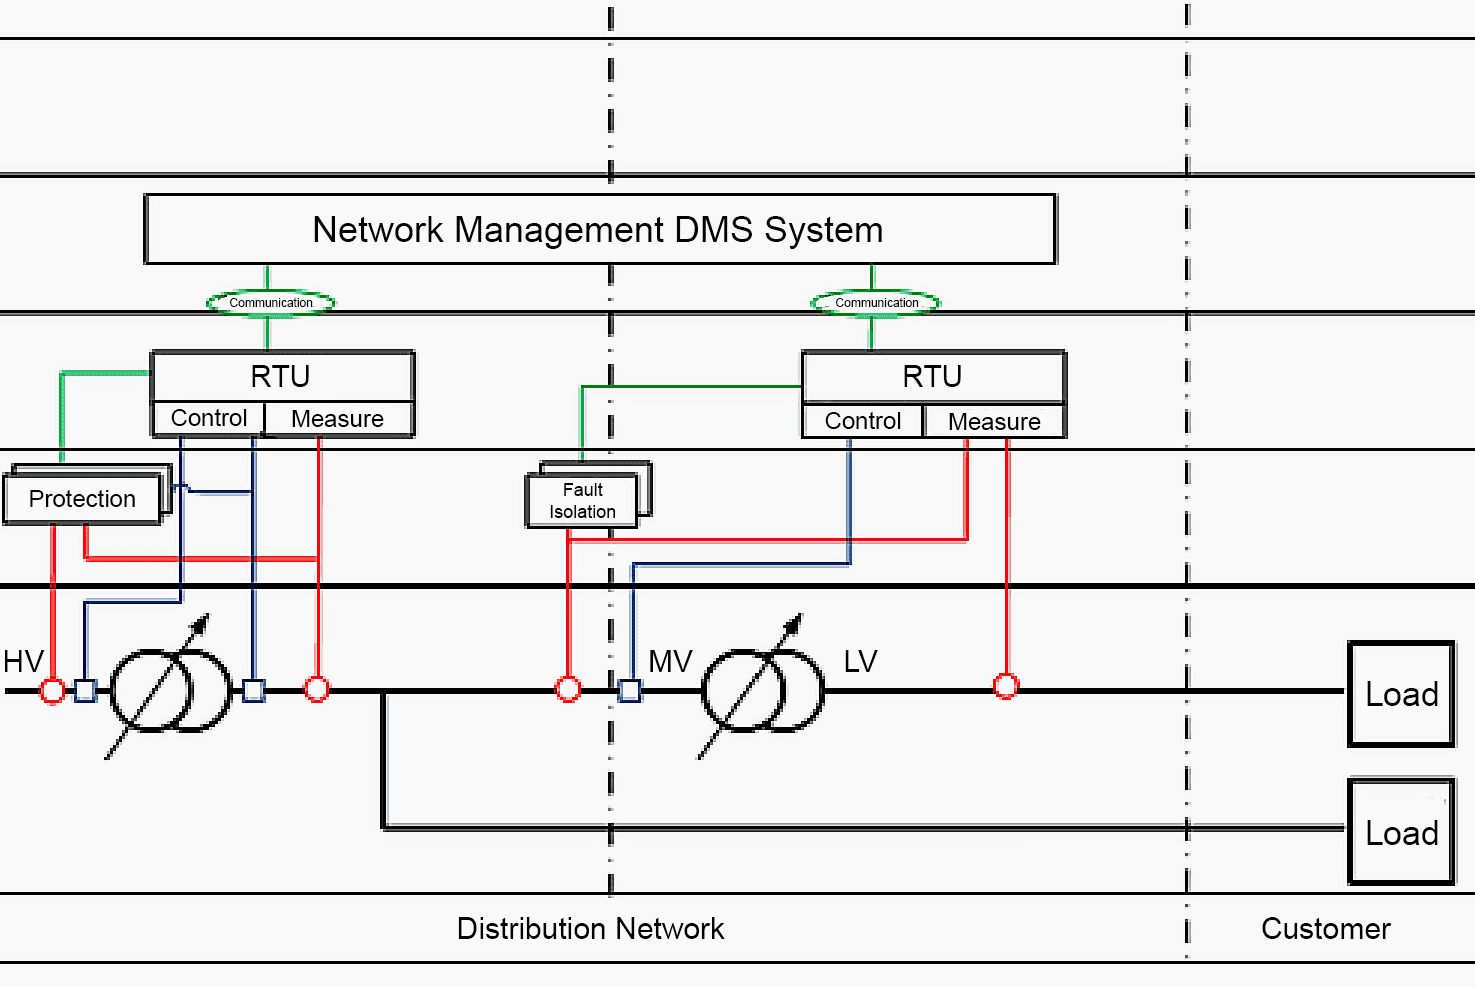 Connection and disconnection of network equipment by remote control